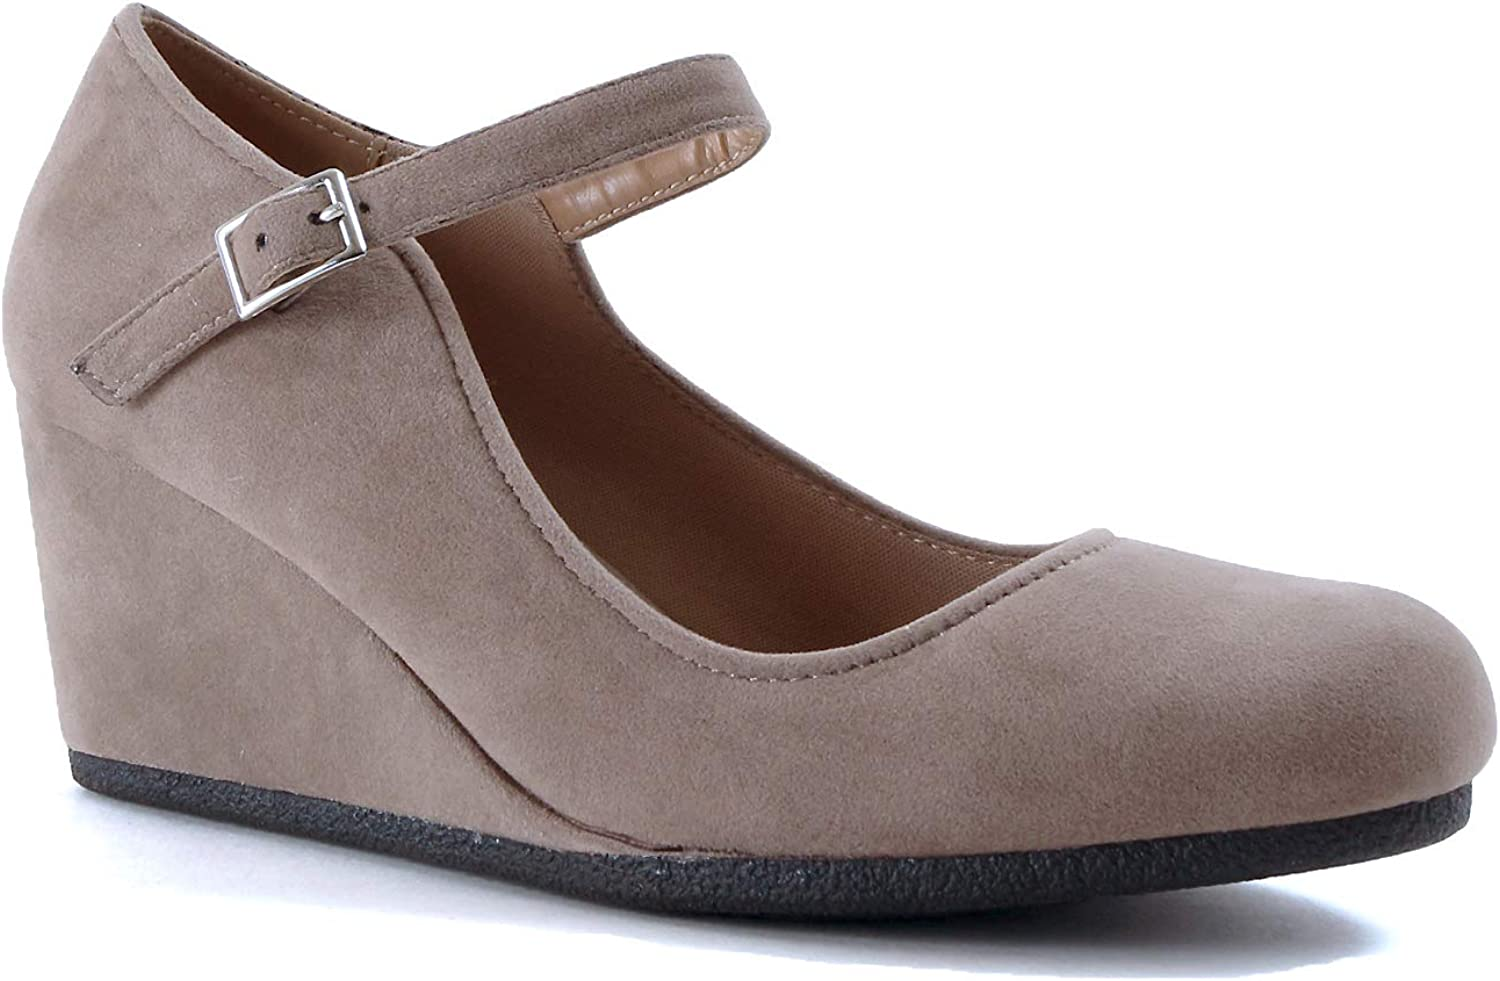 Guilty shoes - Patricia-05 Taupe Suede, 10